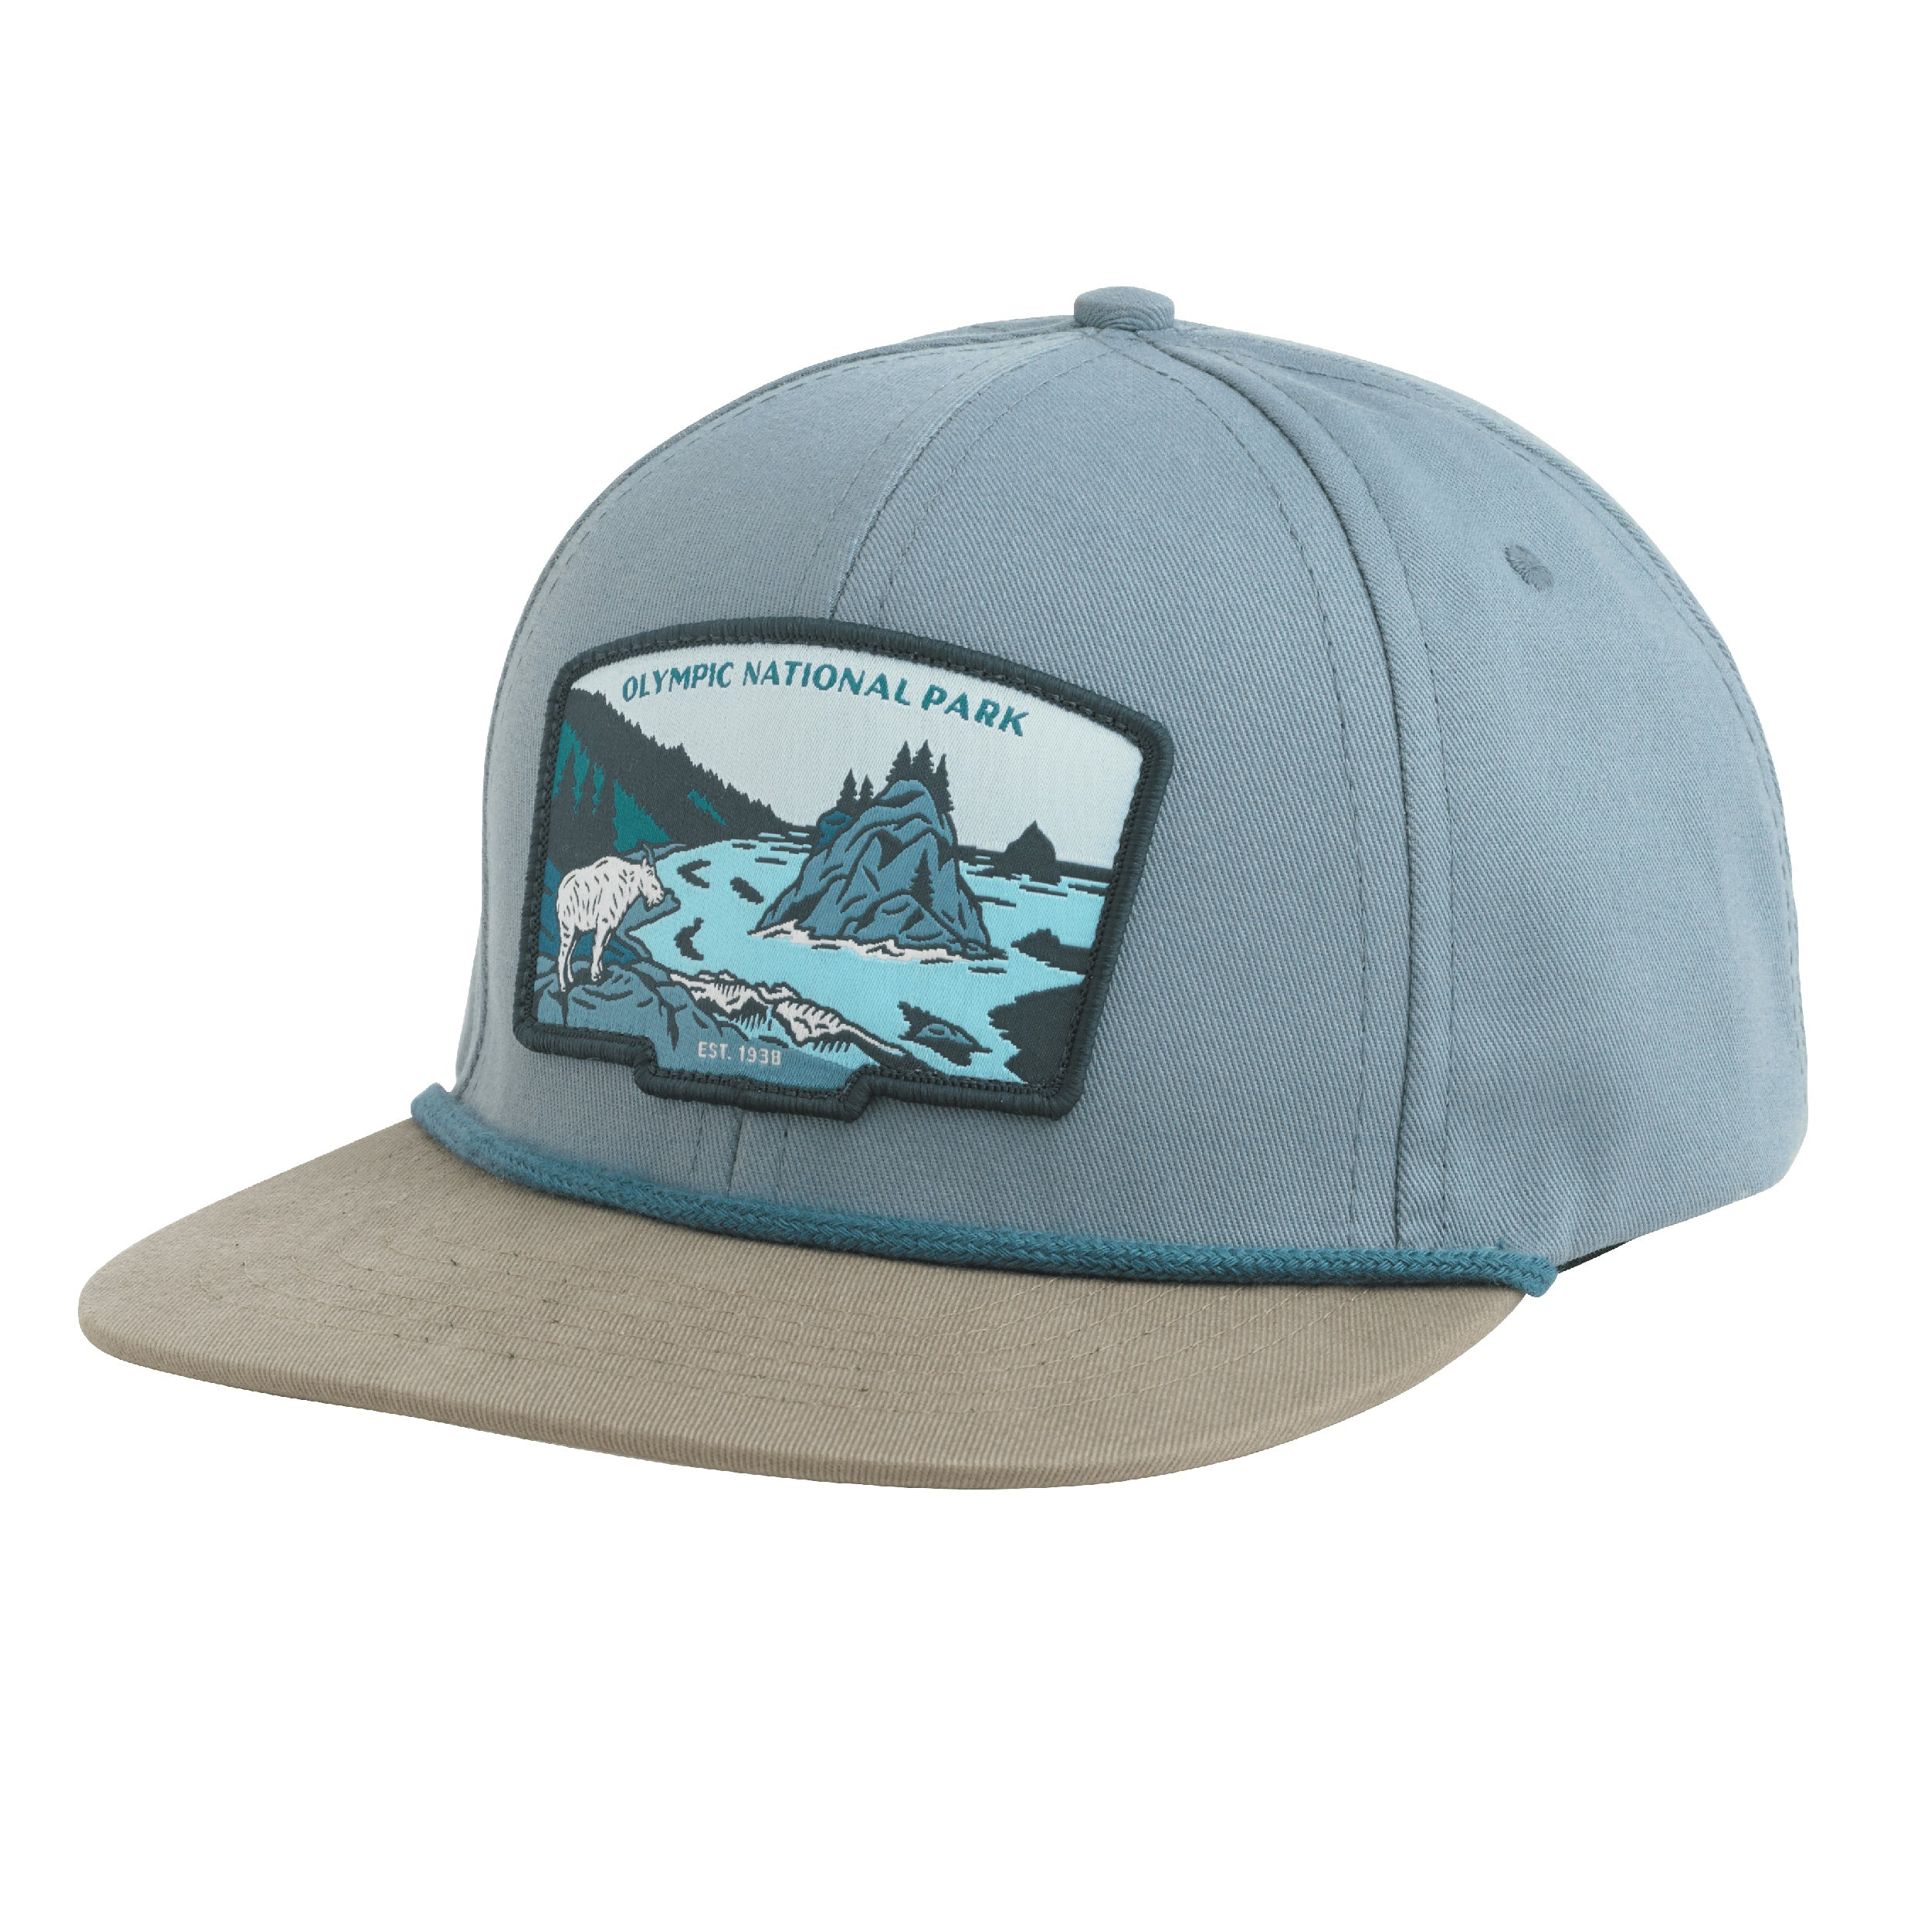 53fdc7a1744 Olympic National Park Hat – Sendero Provisions Co.